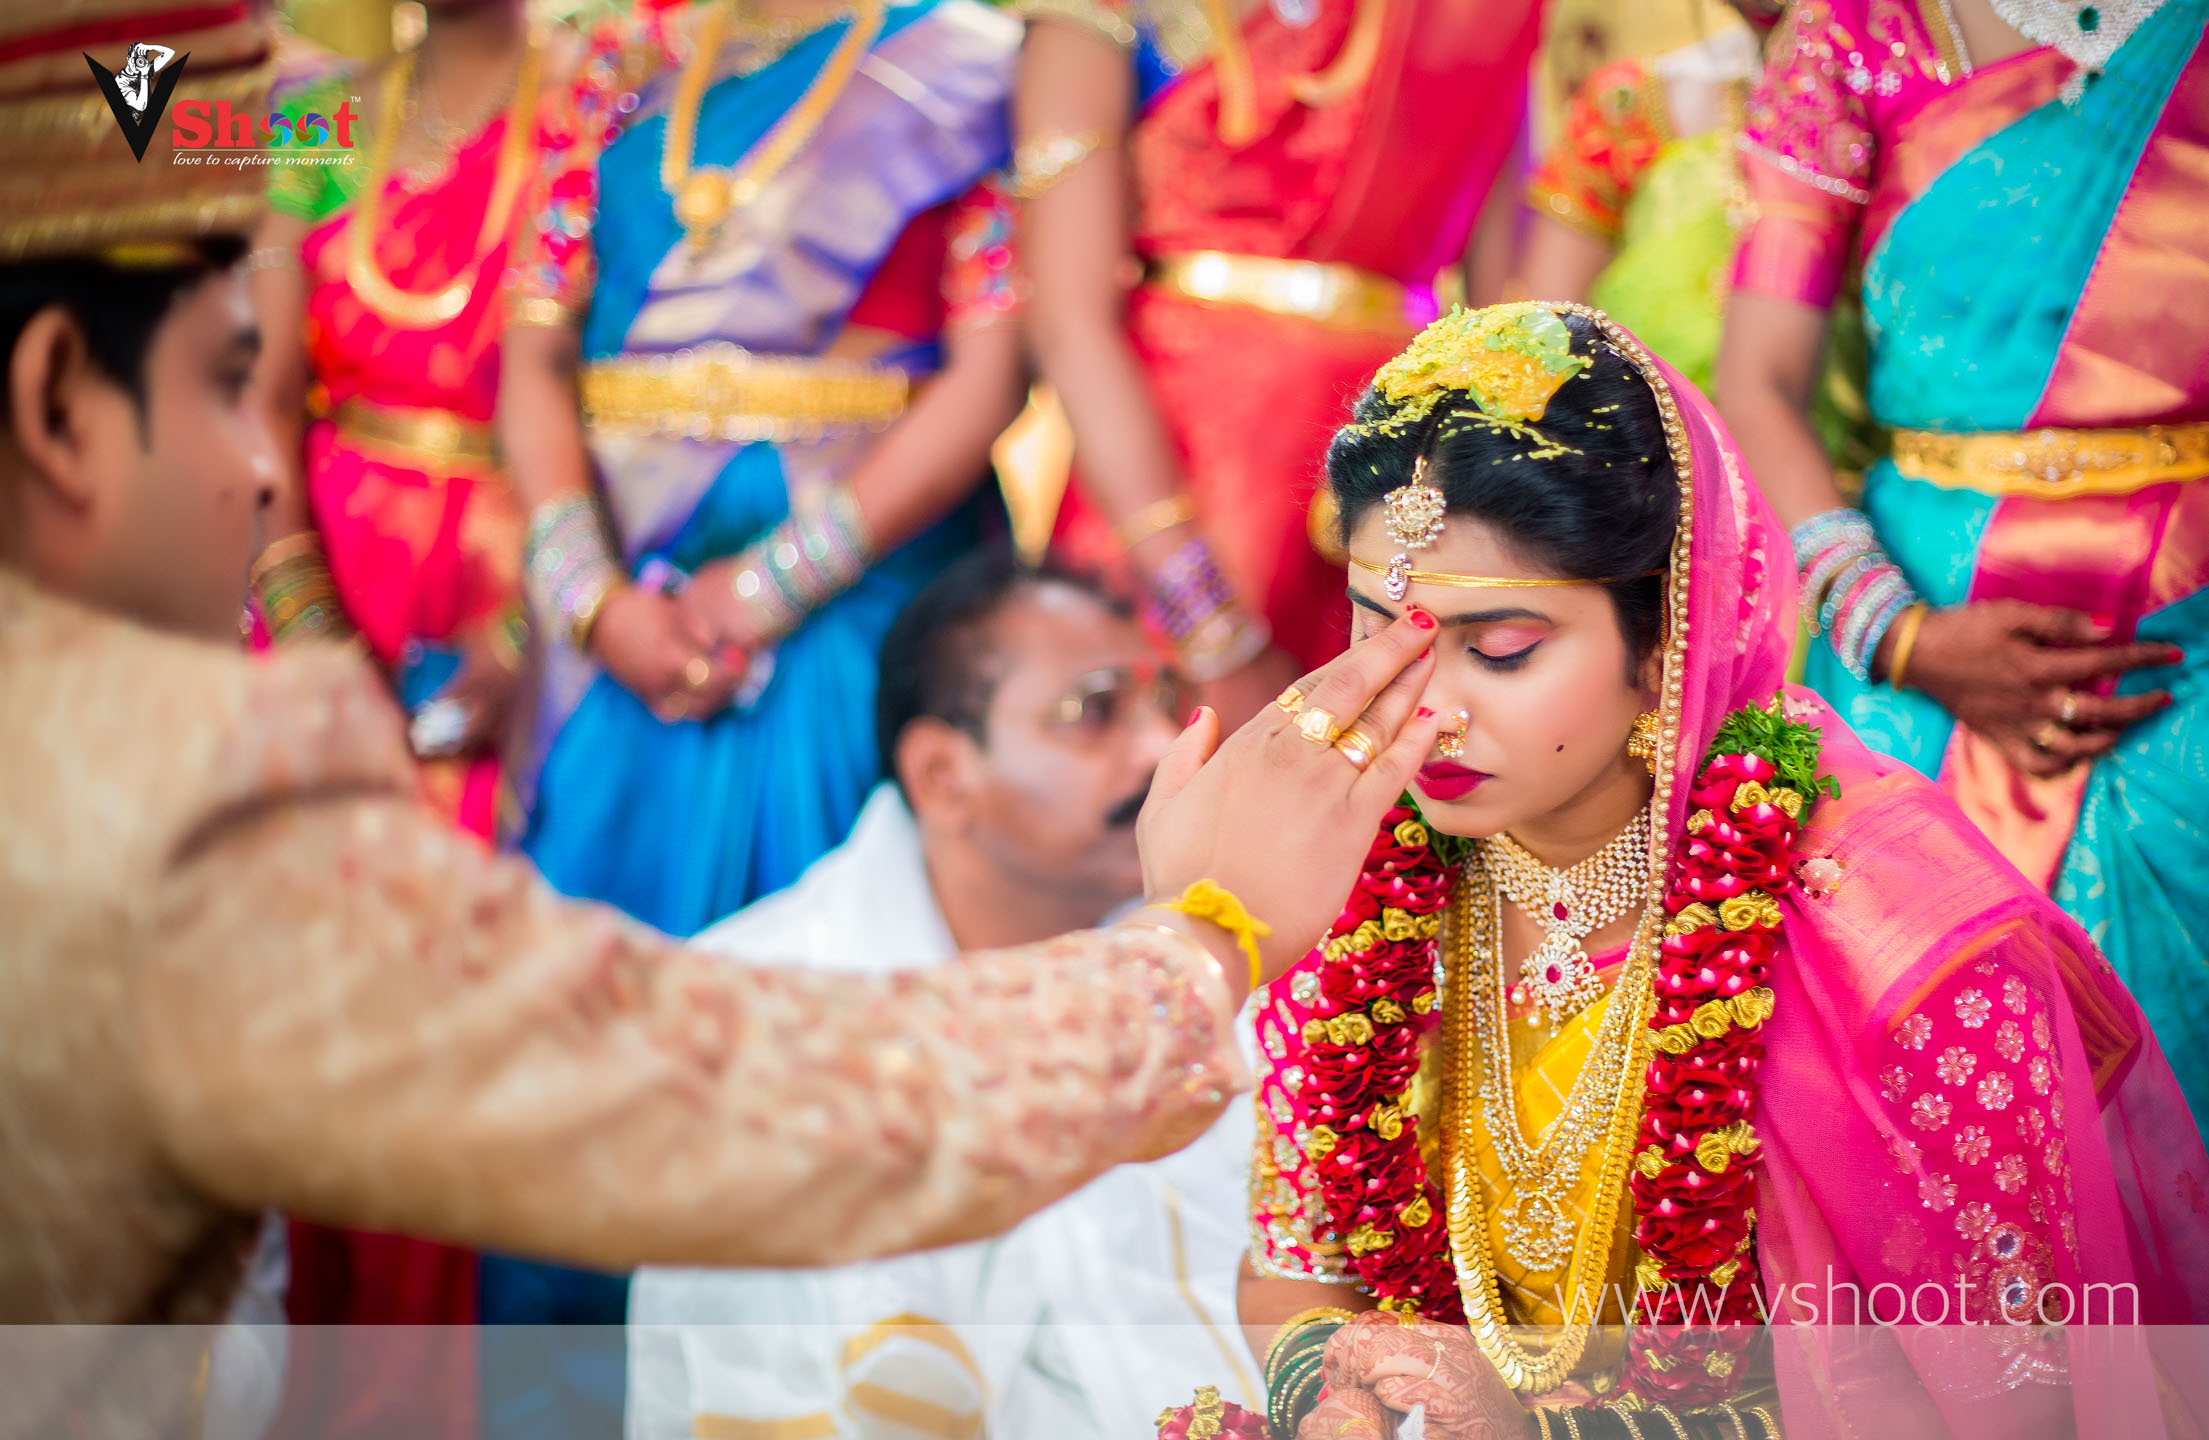 indian-candid-wedding-bride-photography-vshoot